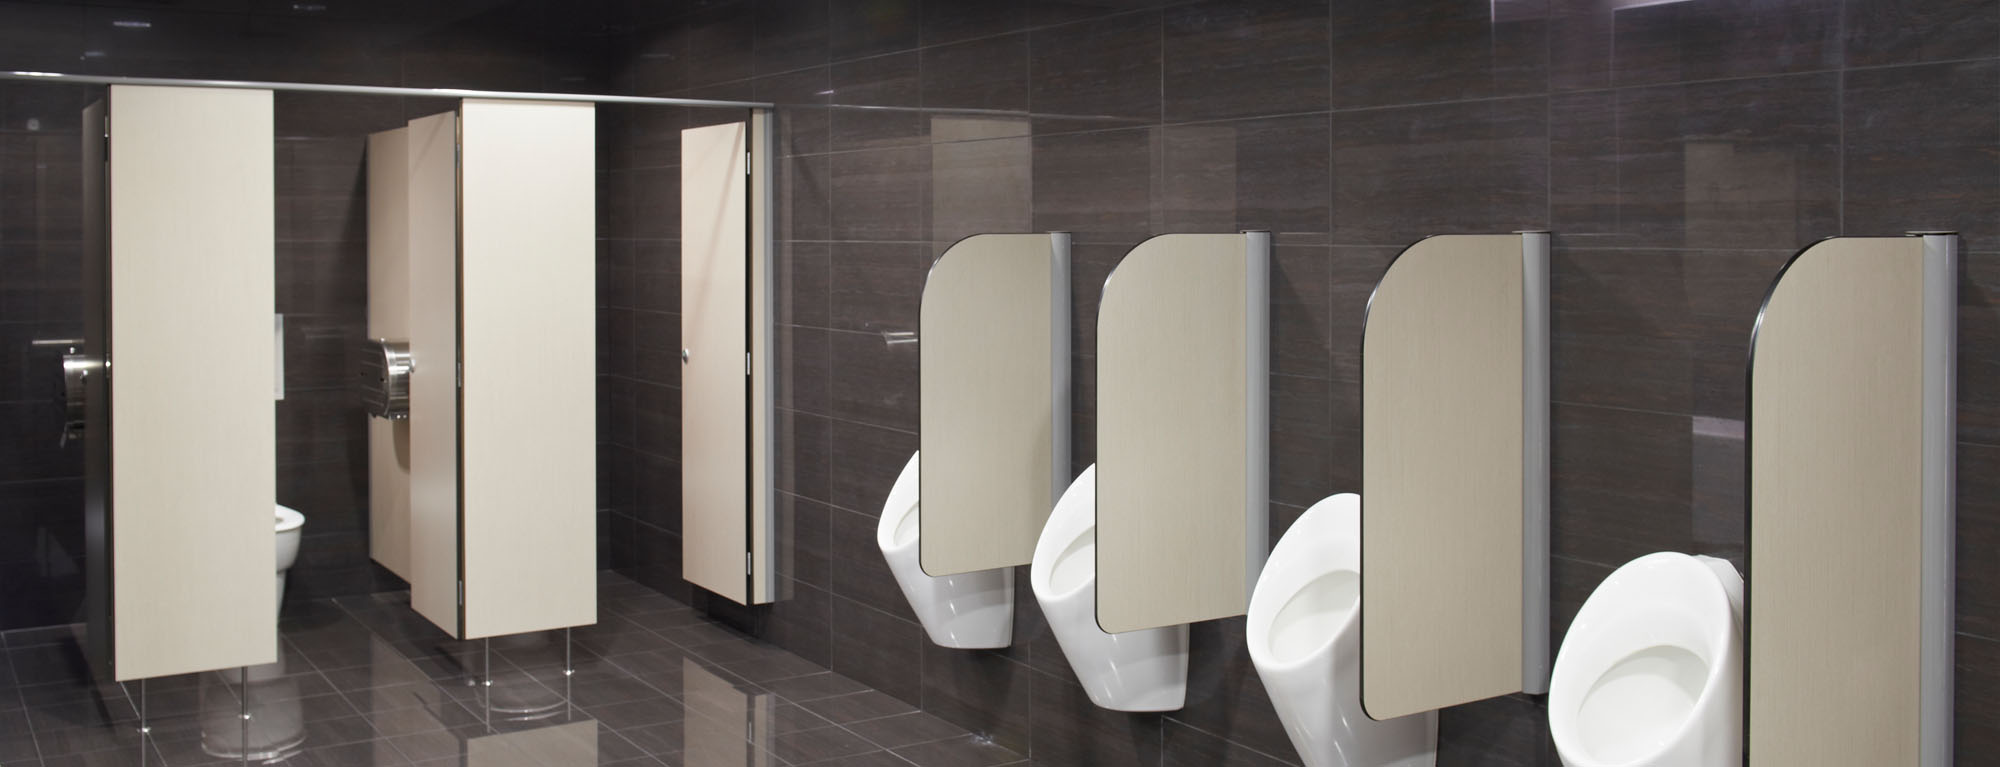 Ablution Solutions & Toilet Parions - Resco New Zealand on commercial bathroom paper towel dispenser, commercial bathroom sinks, commercial bathroom vanity tops, commercial bathroom counters, commercial bathroom showers, commercial bathroom partitions, commercial bathroom vanity units, commercial bathroom stalls,